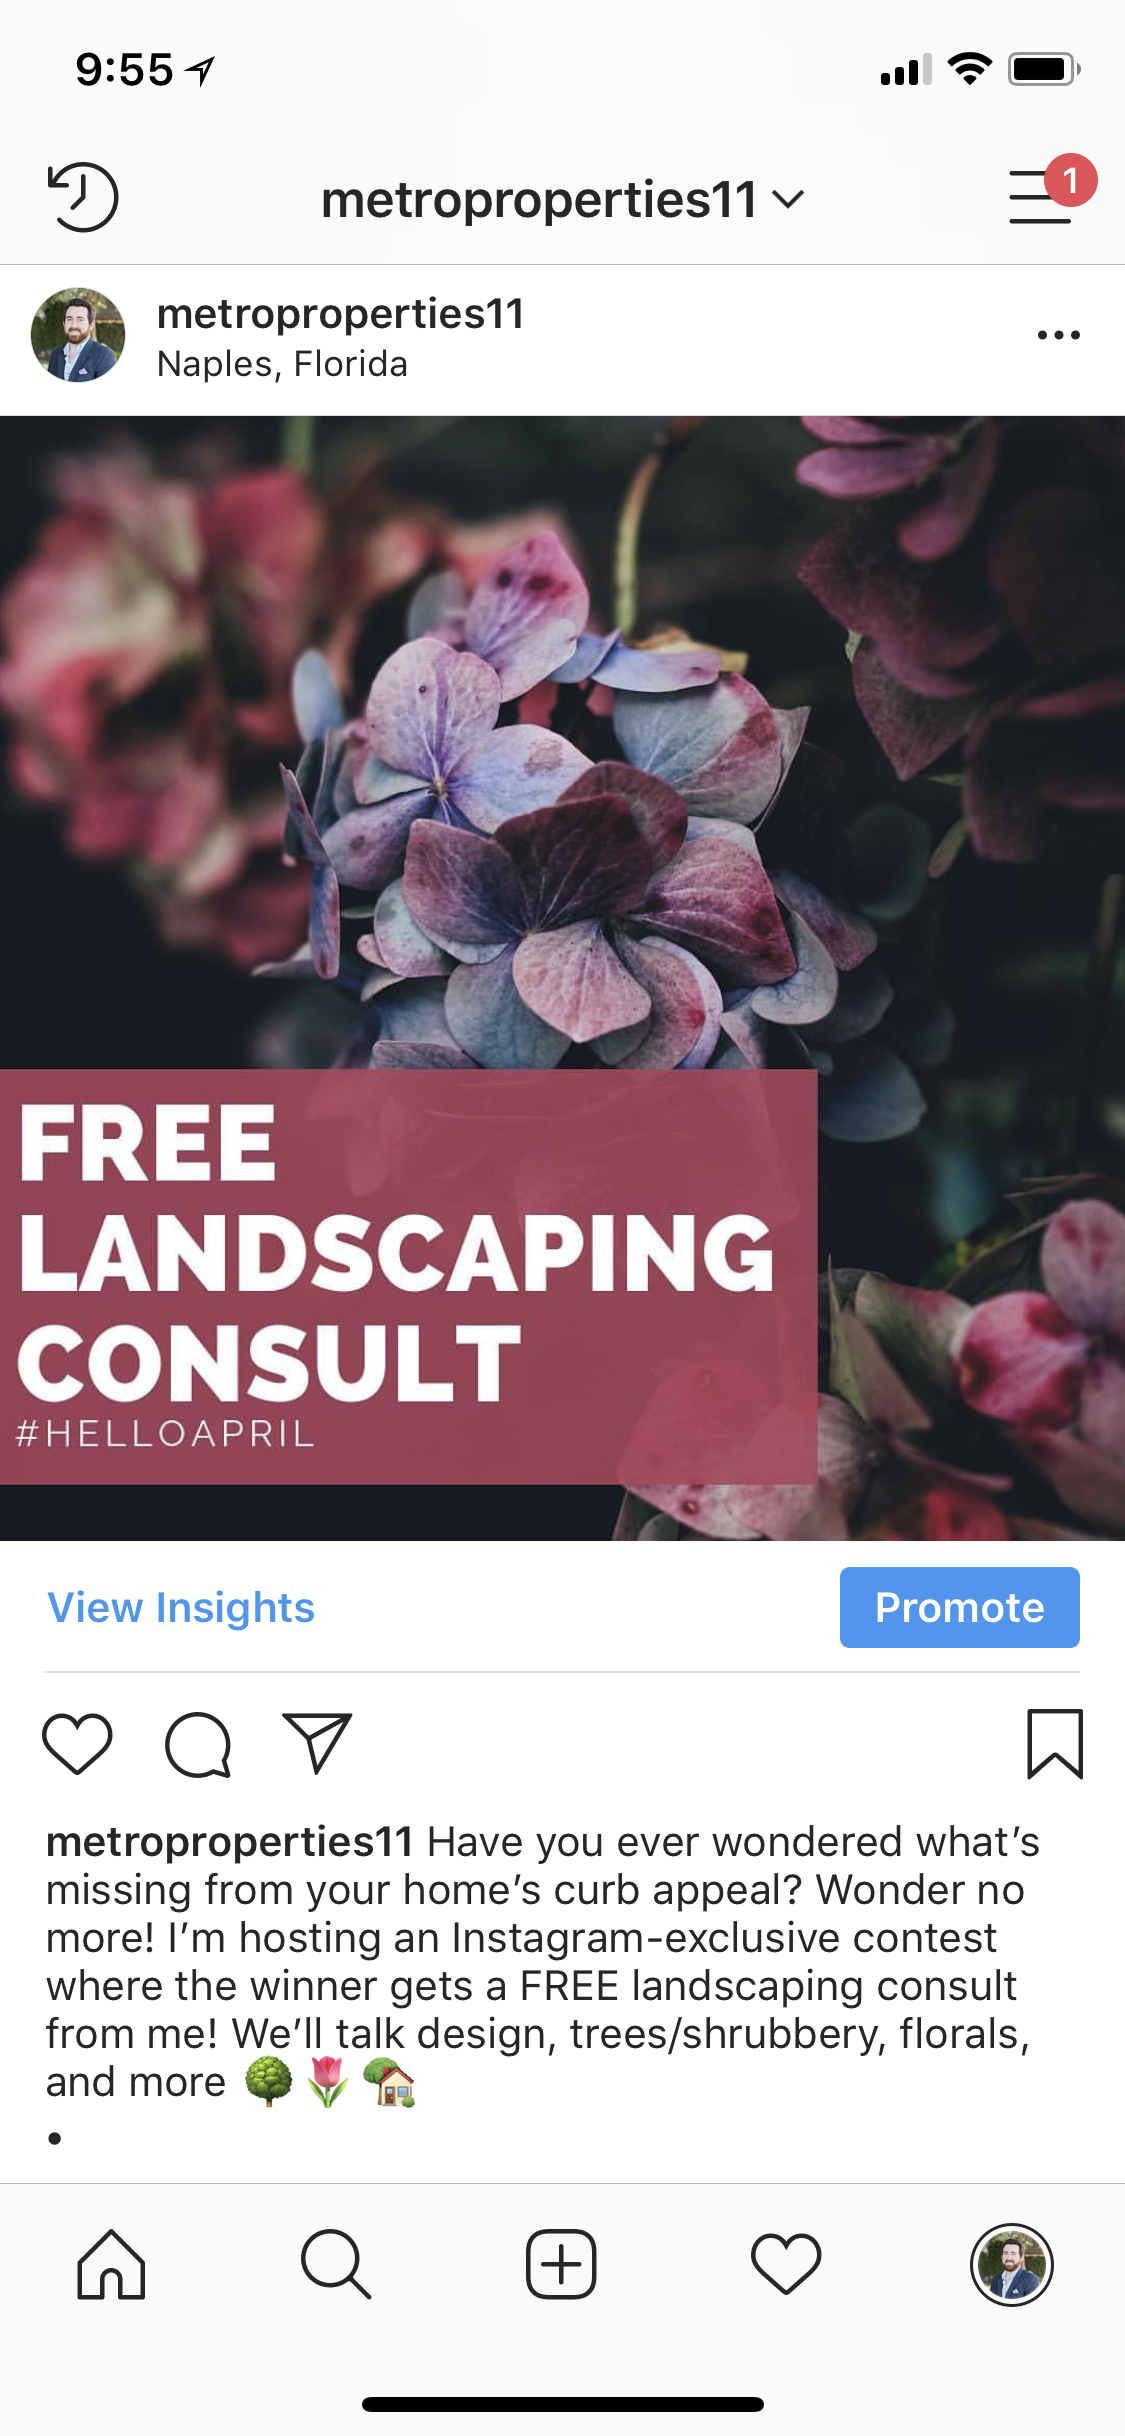 landscaping consult